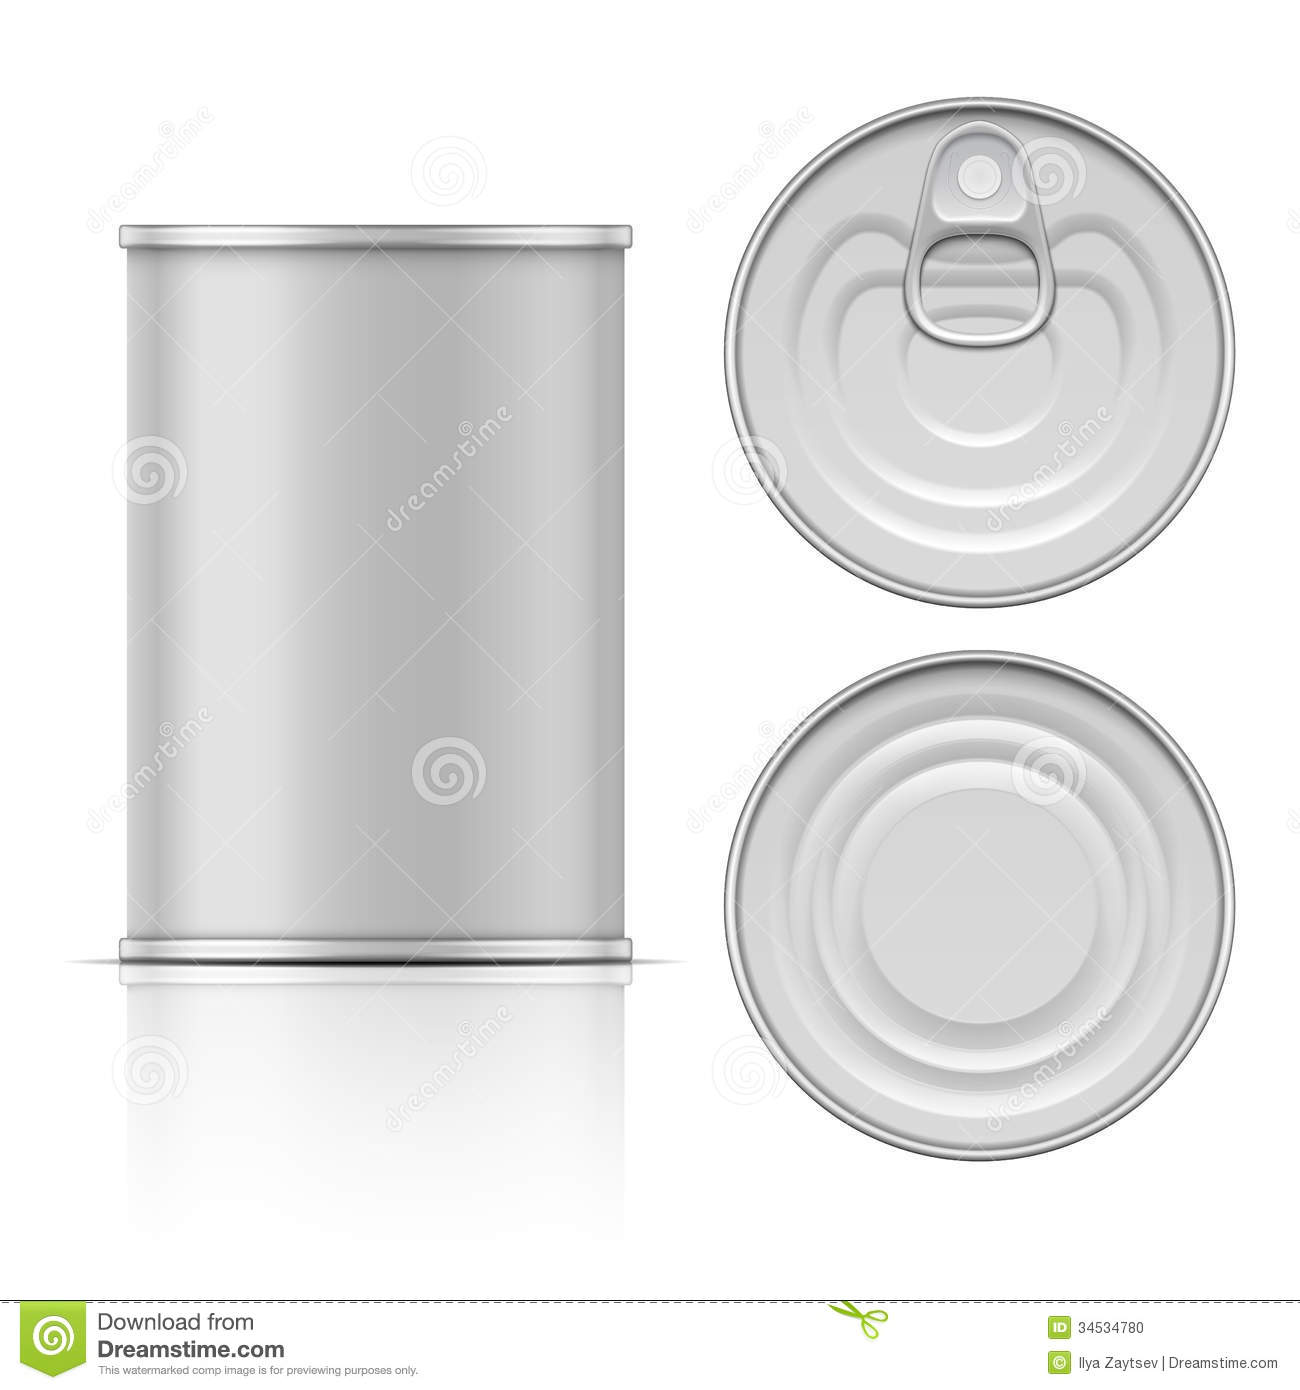 Tin Can With Ring Pull Side Top And Bottom View Stock